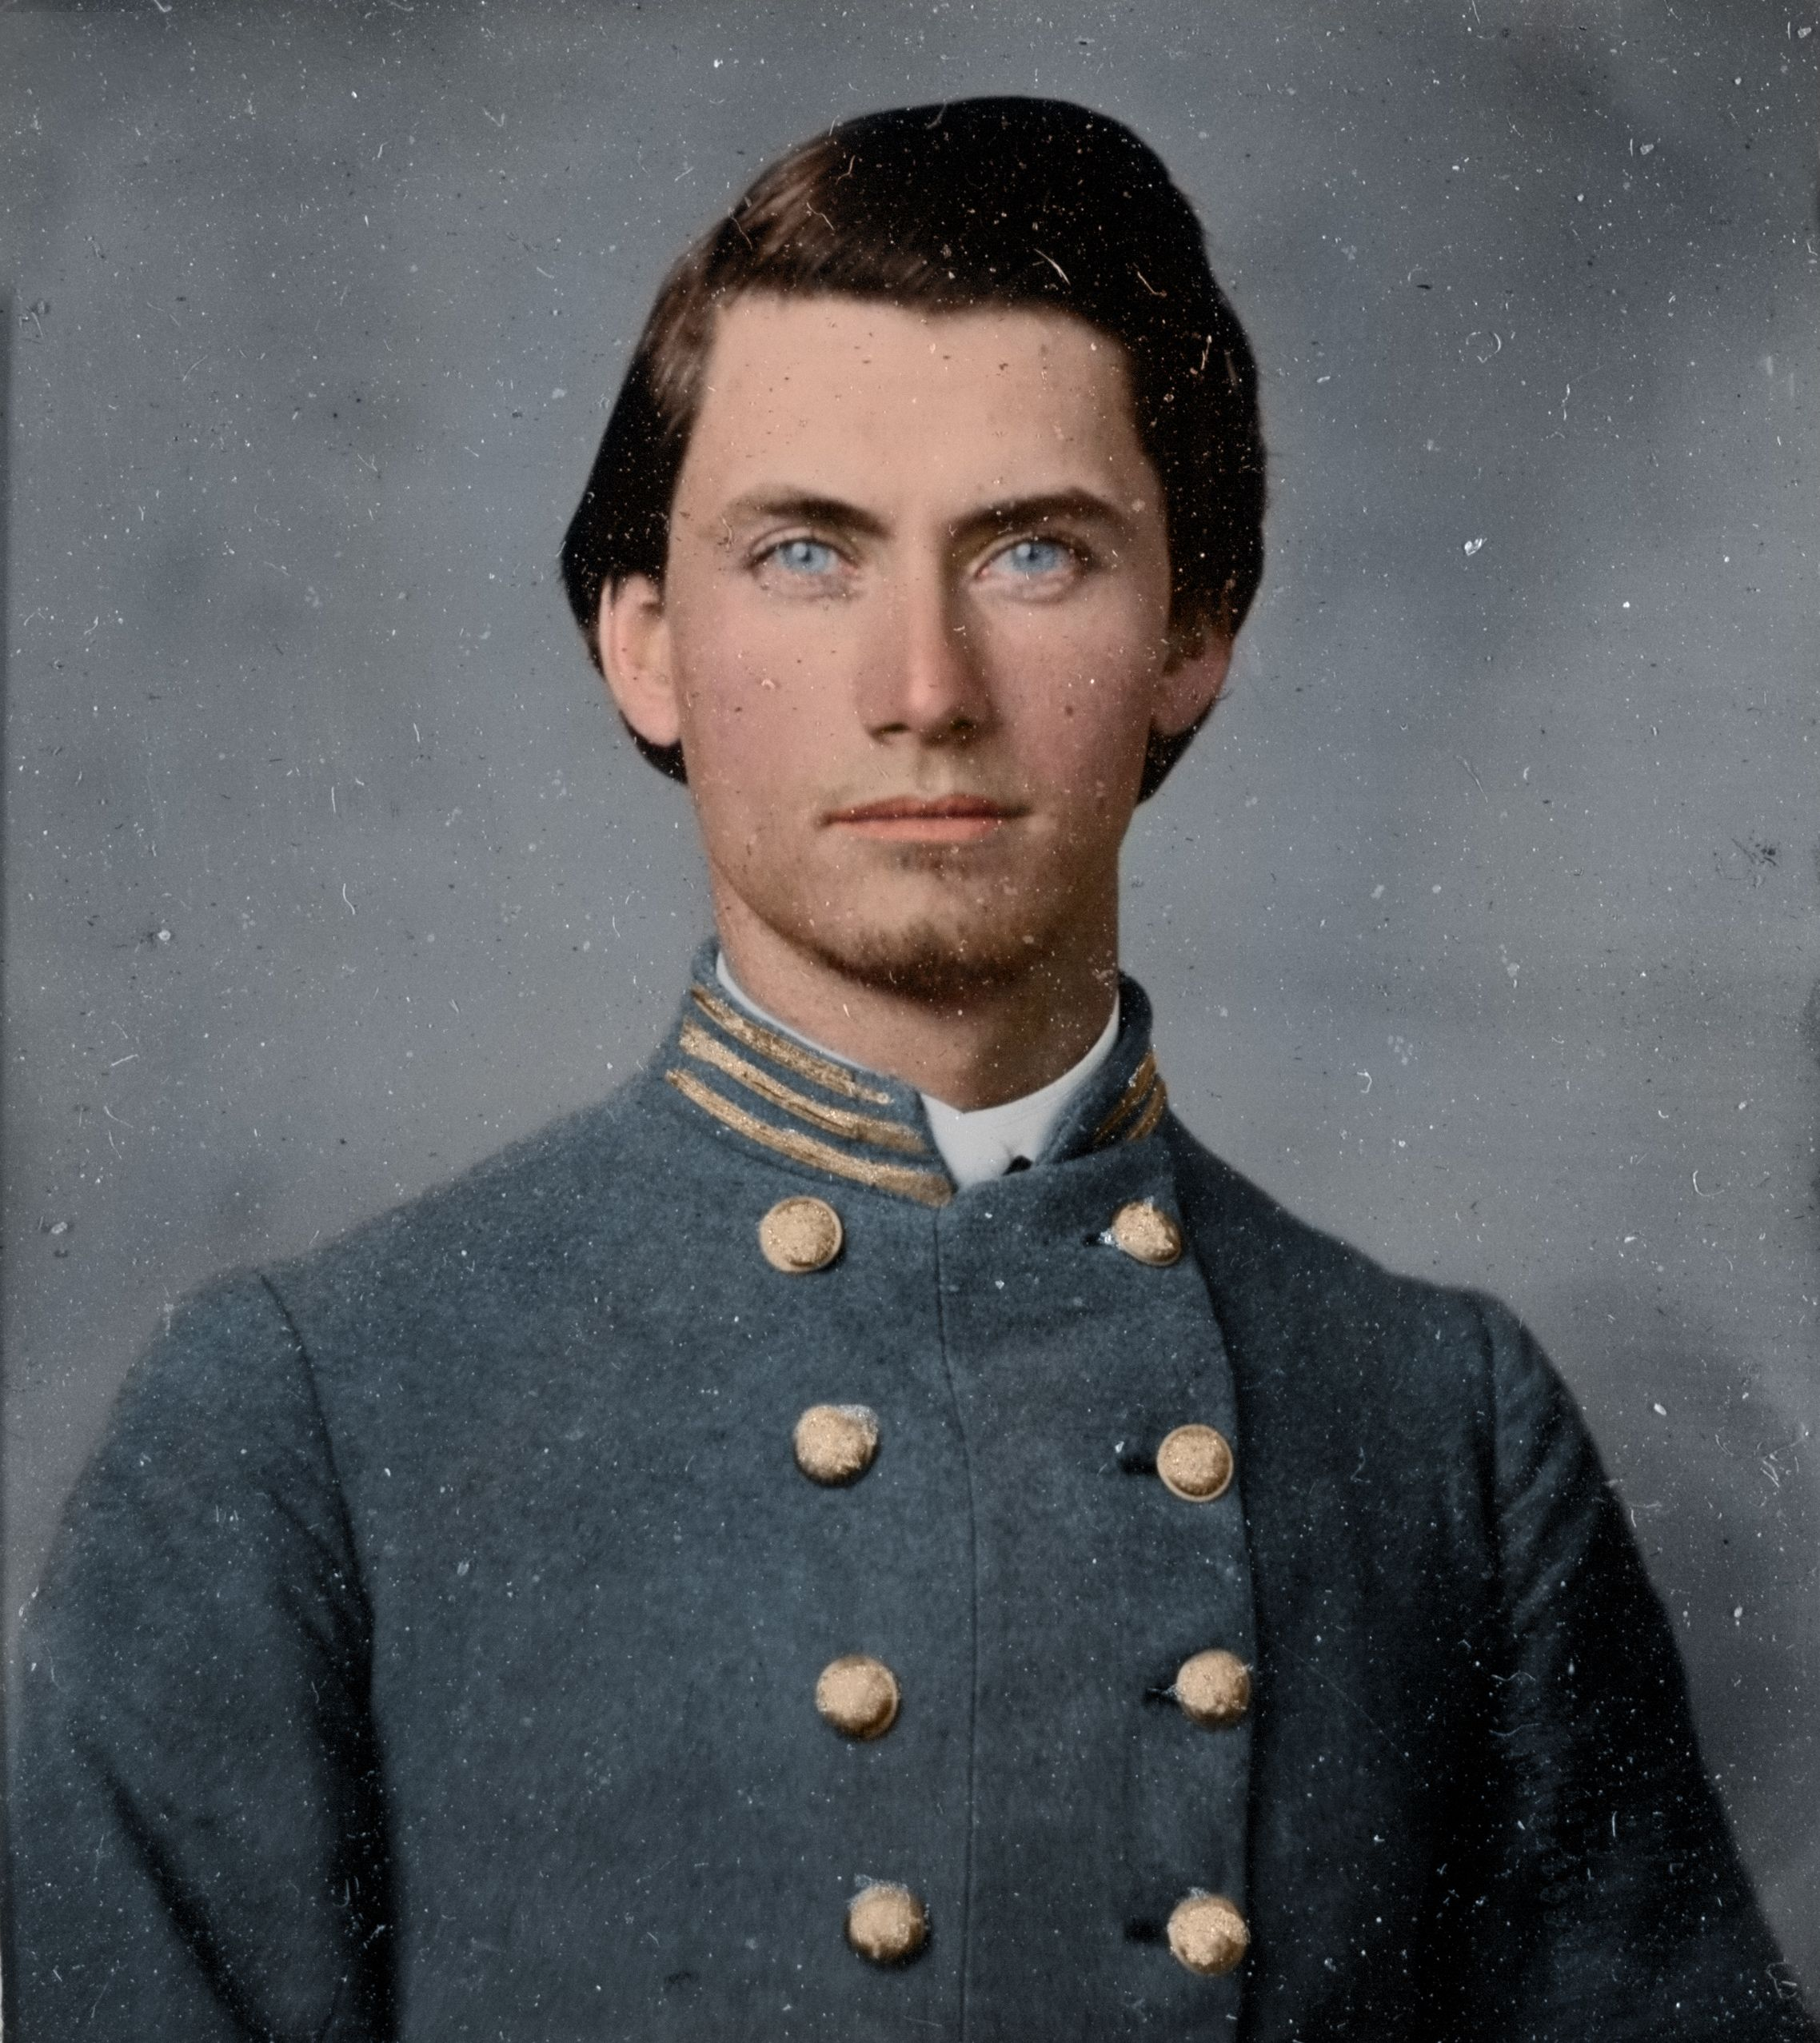 Confederate captain with blue eyes a girl could get lost